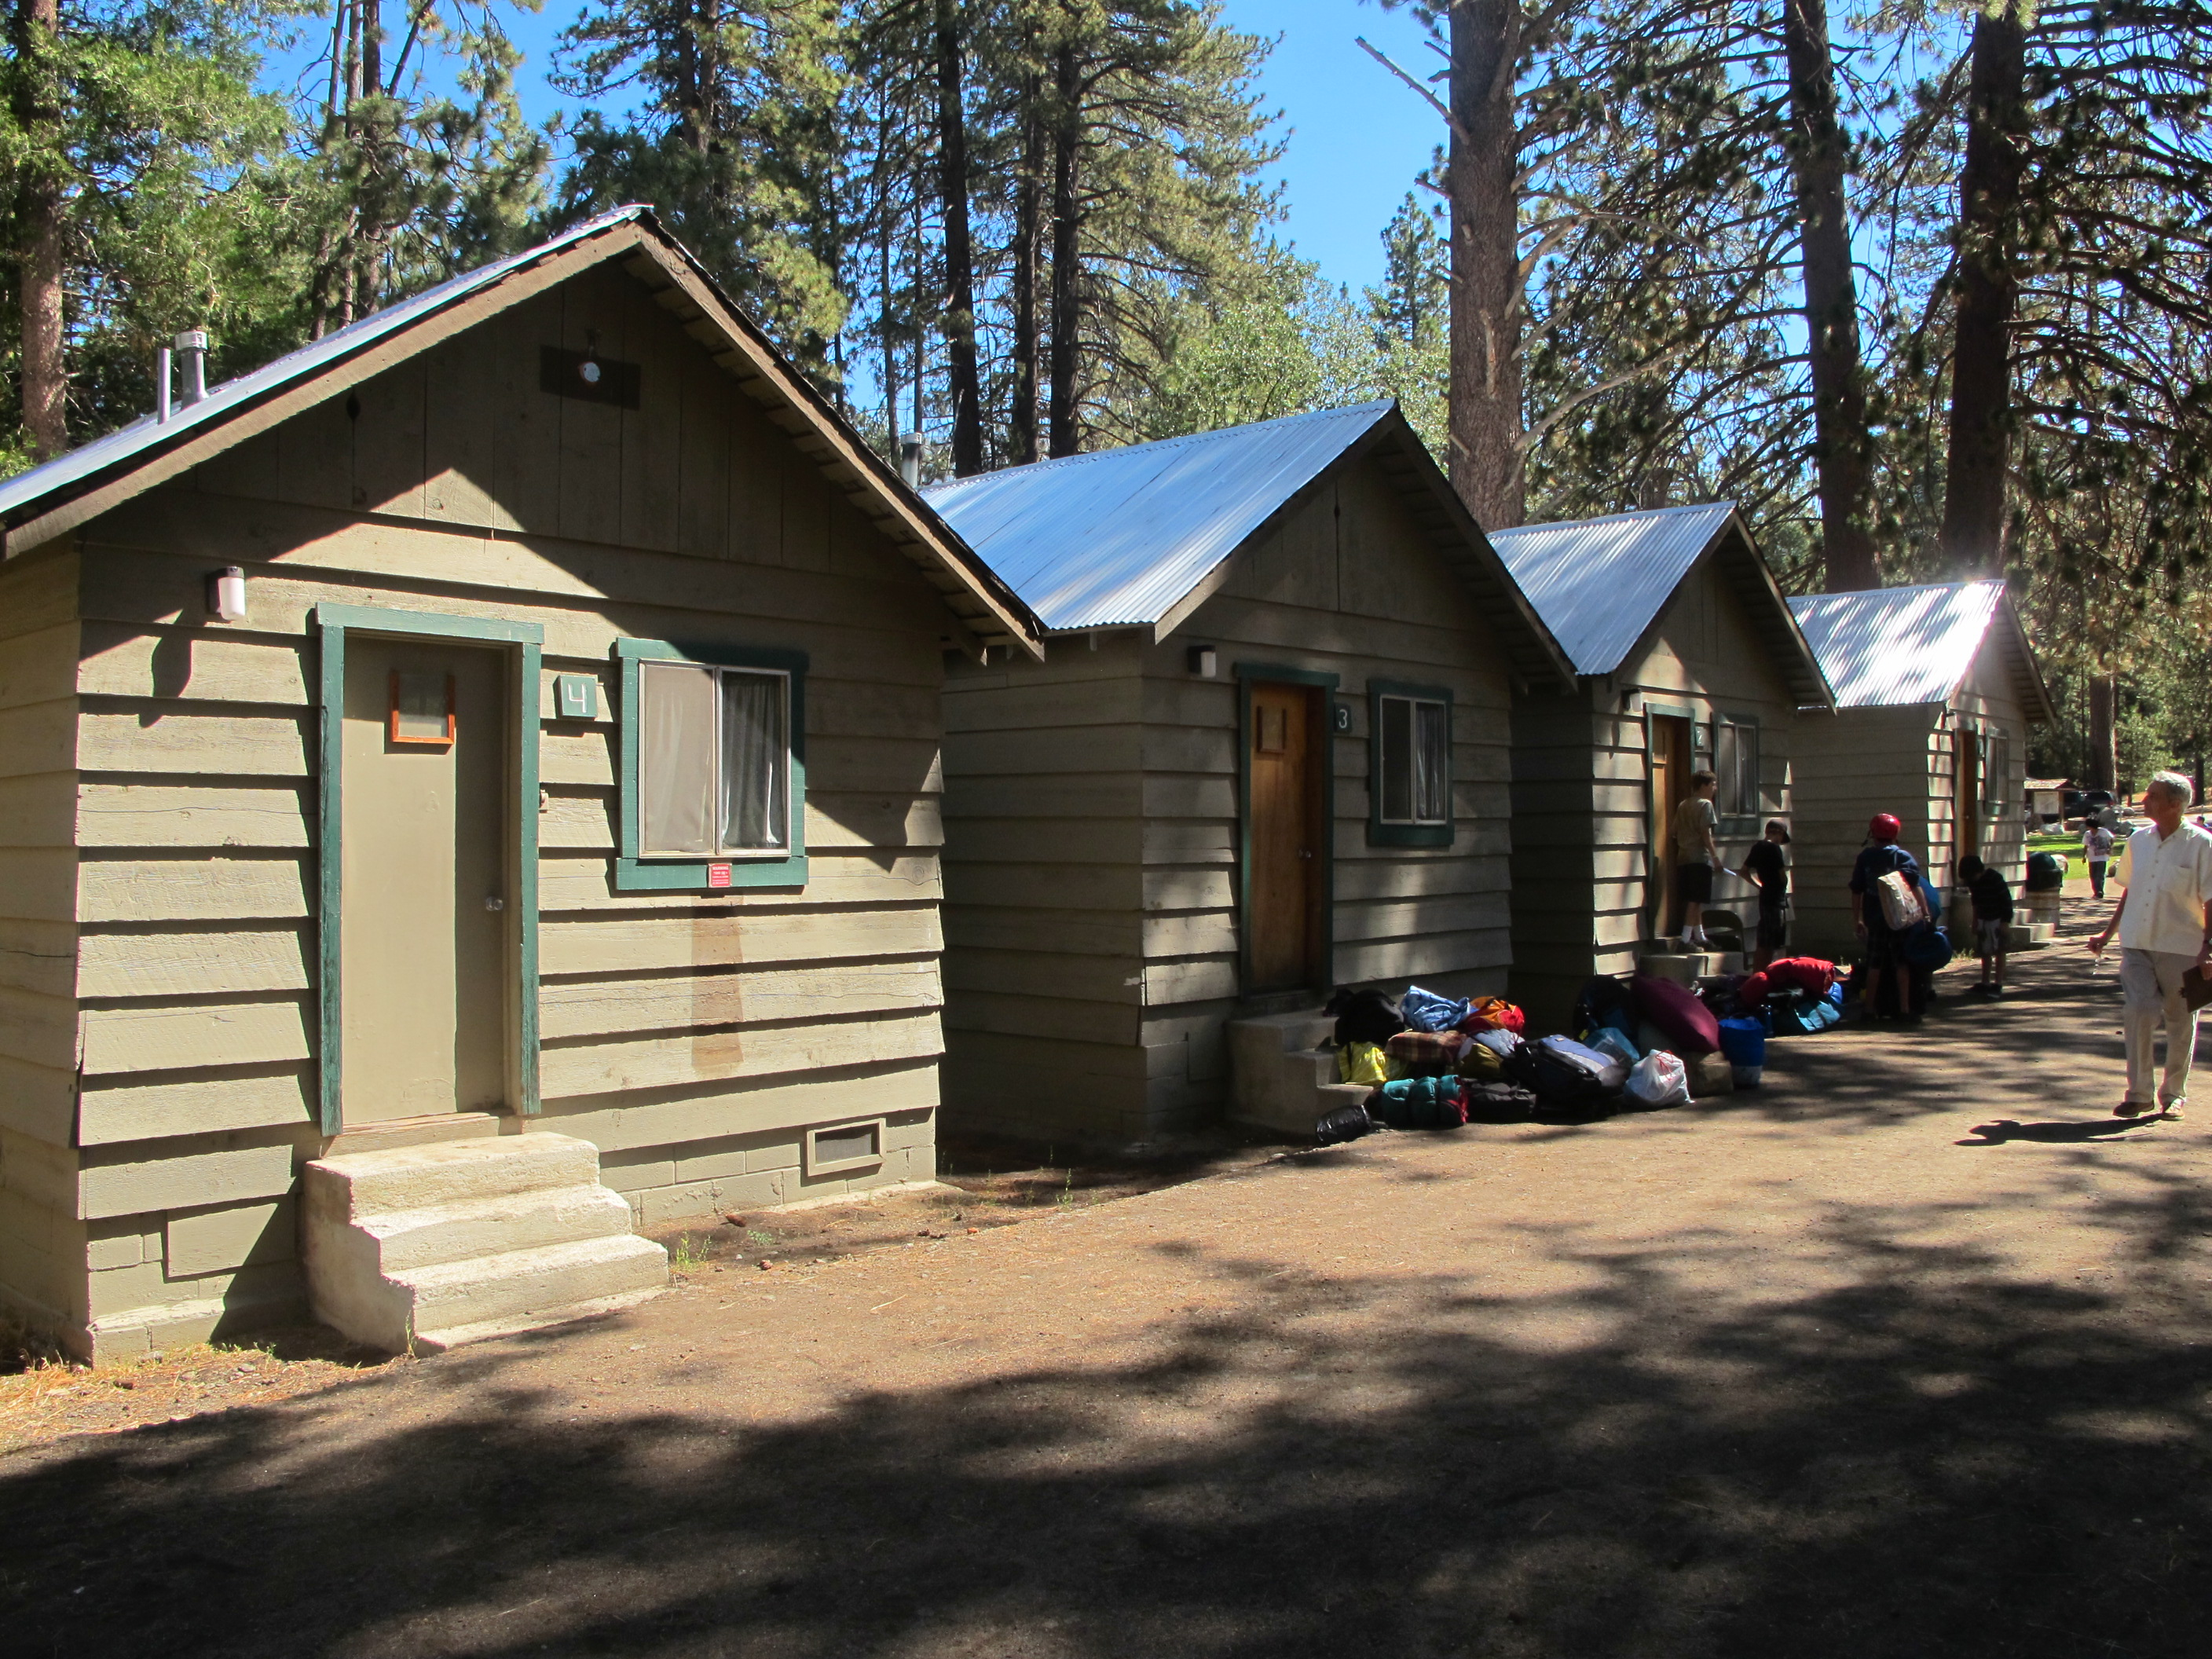 Summer Camp Cabins Bing Images